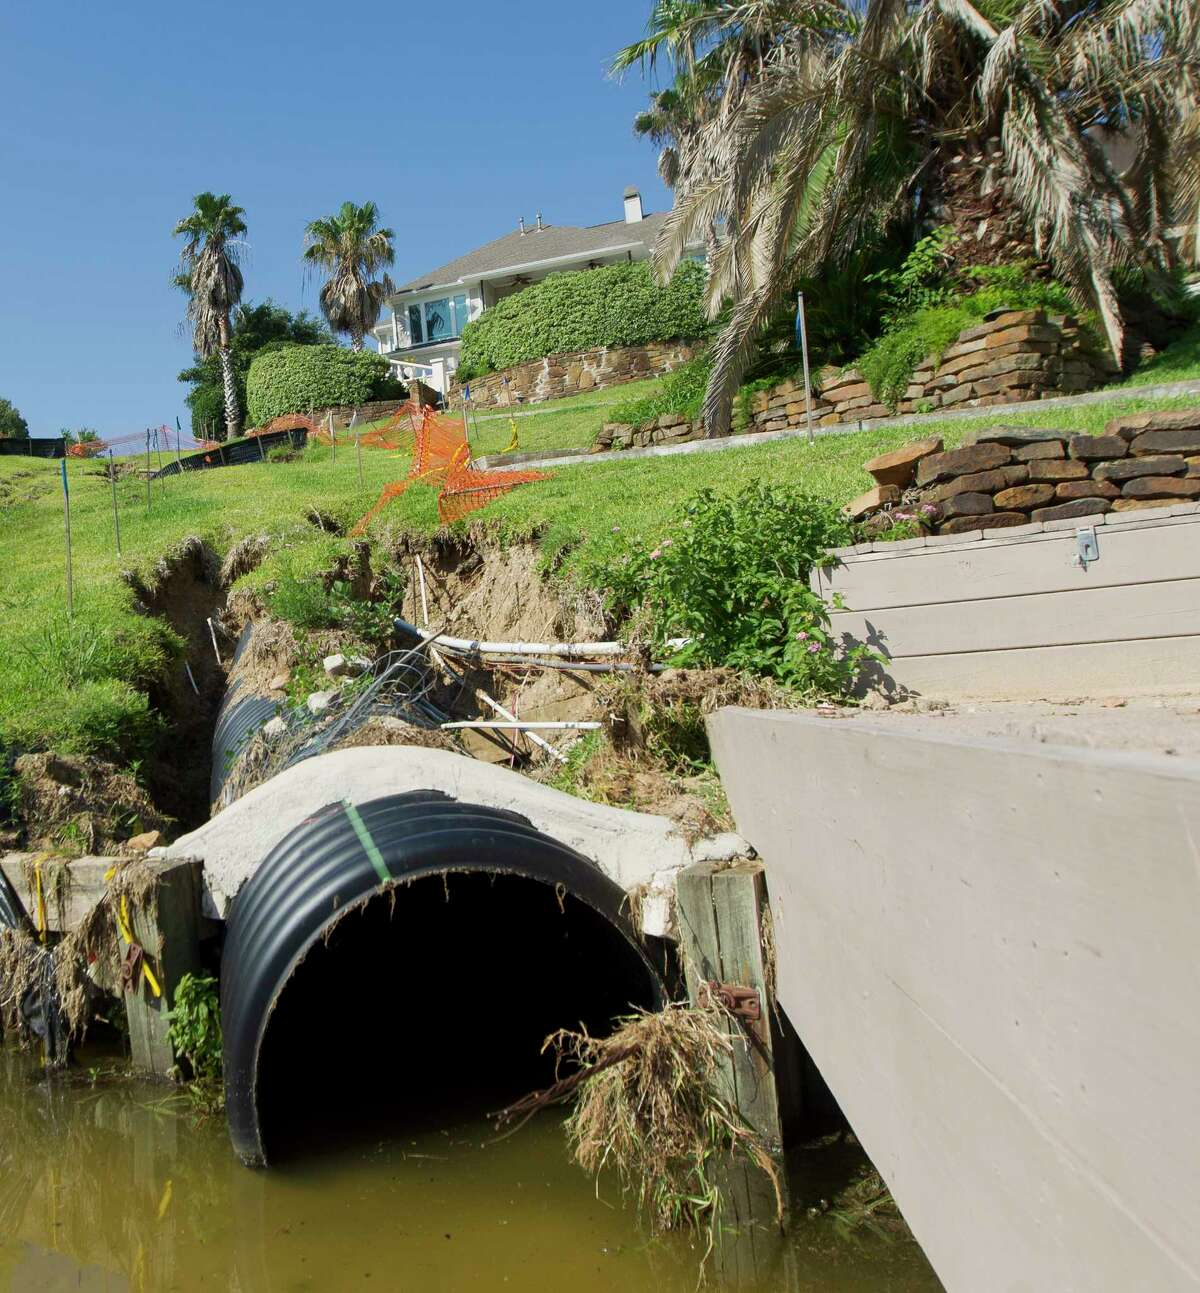 A drainage line two years ago damaged the not only the easement between two homes, but has also spread into some residents' property.